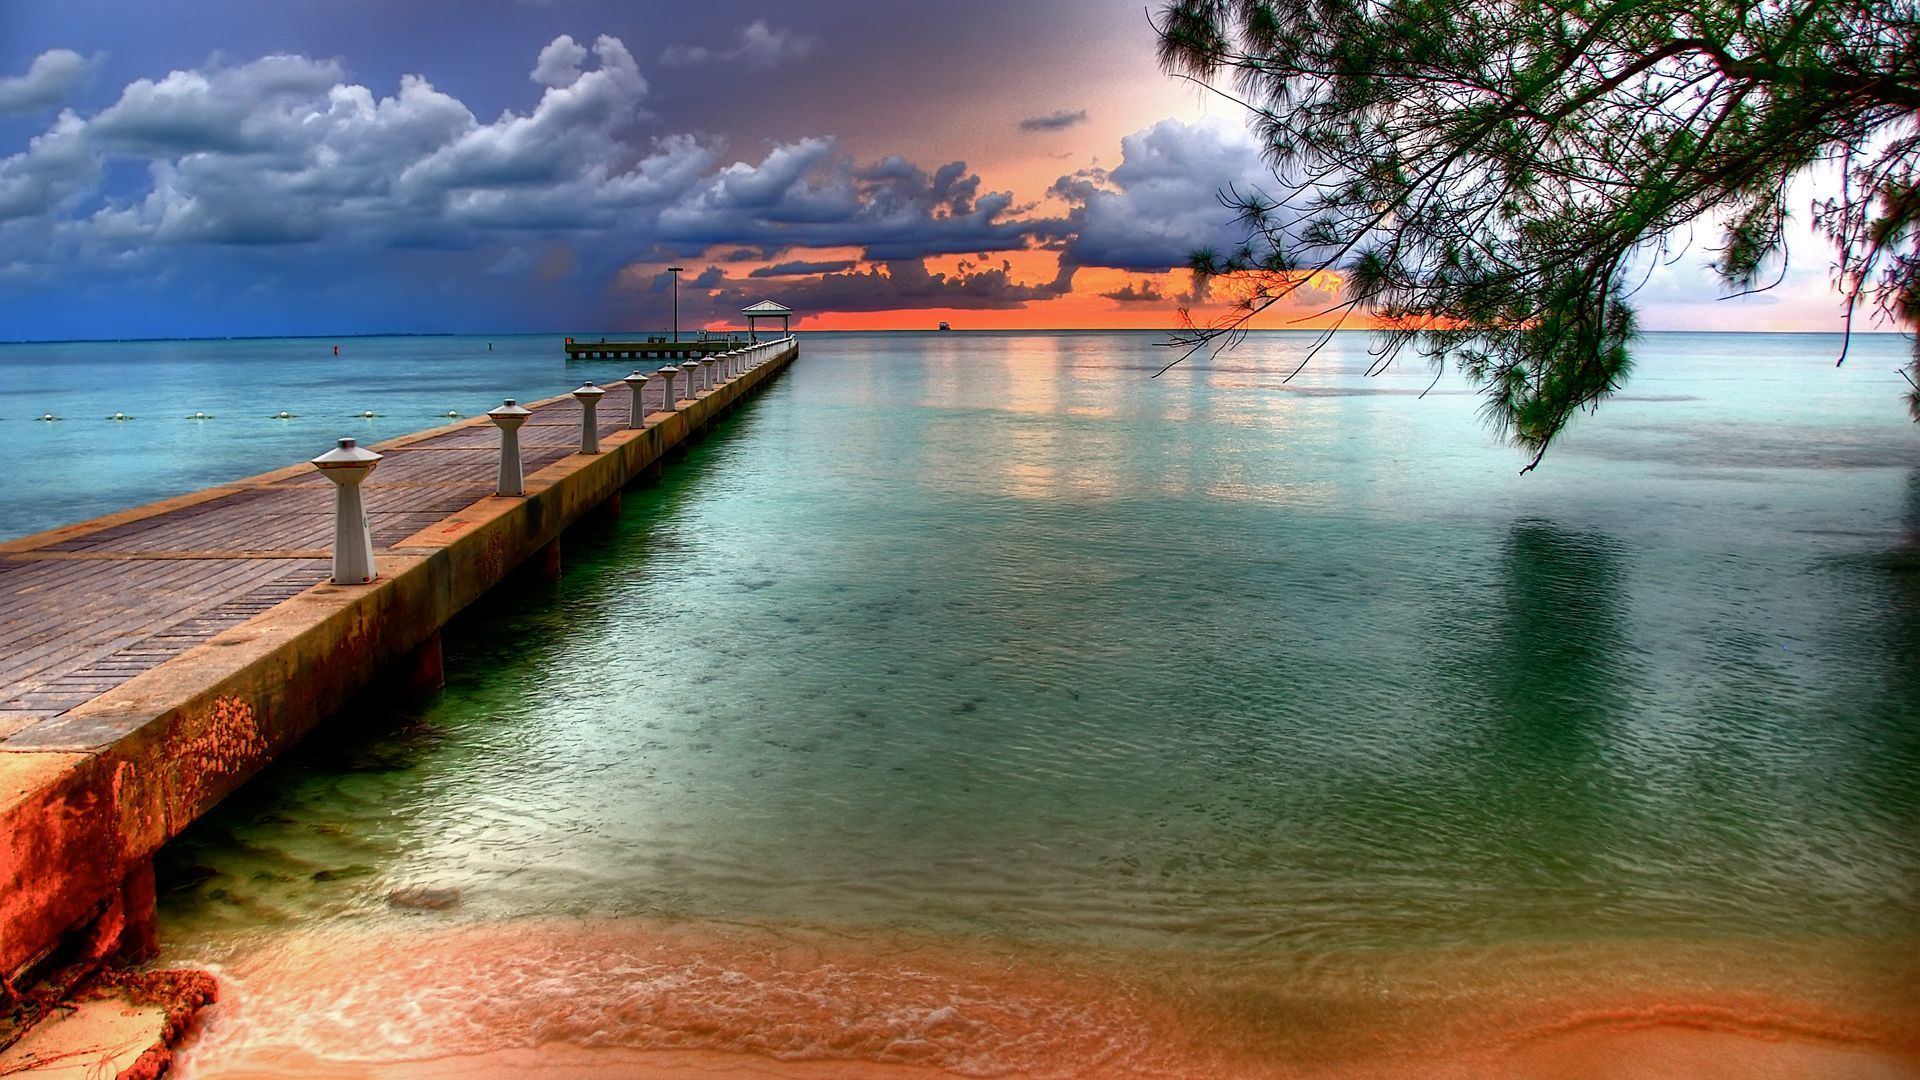 Florida Keys Hd Wallpaper Wallpapersafari